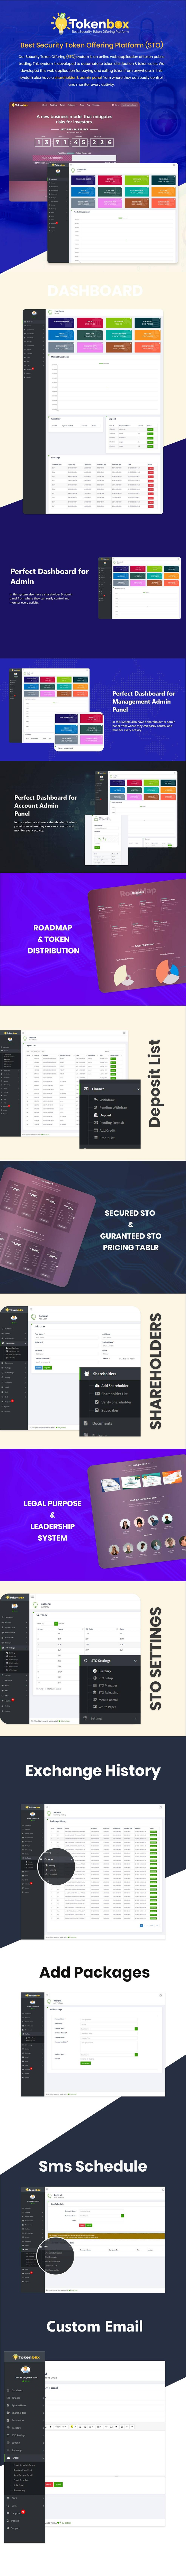 Tokenbox - Best Security Token Offering Platform (STO) - 2